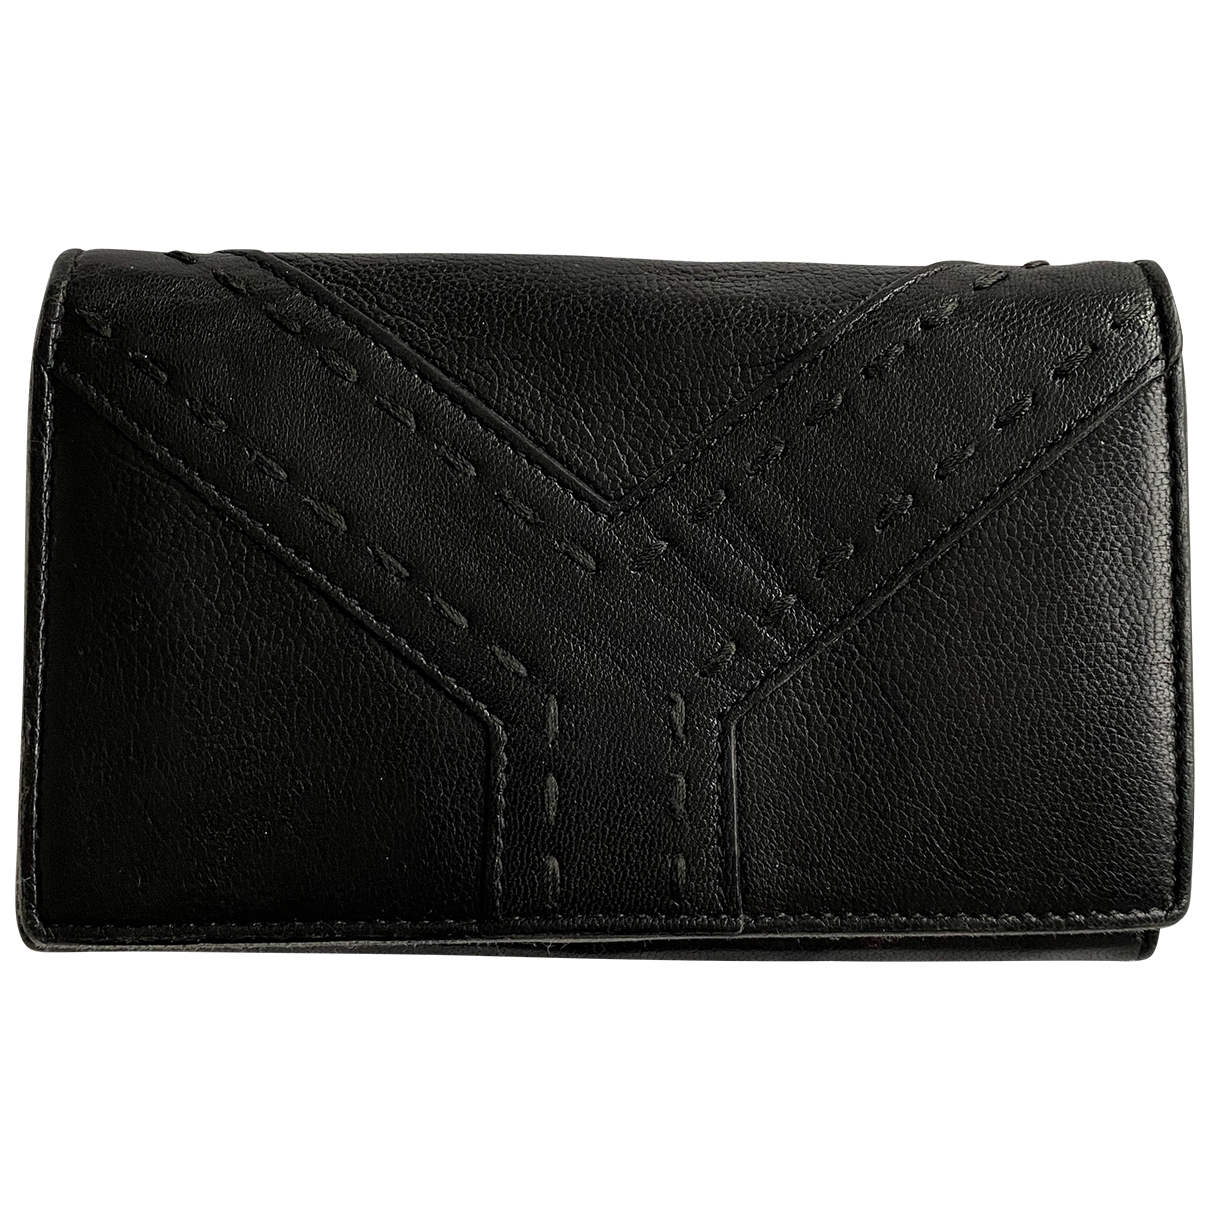 Cartera de Cuero Yves Saint Laurent